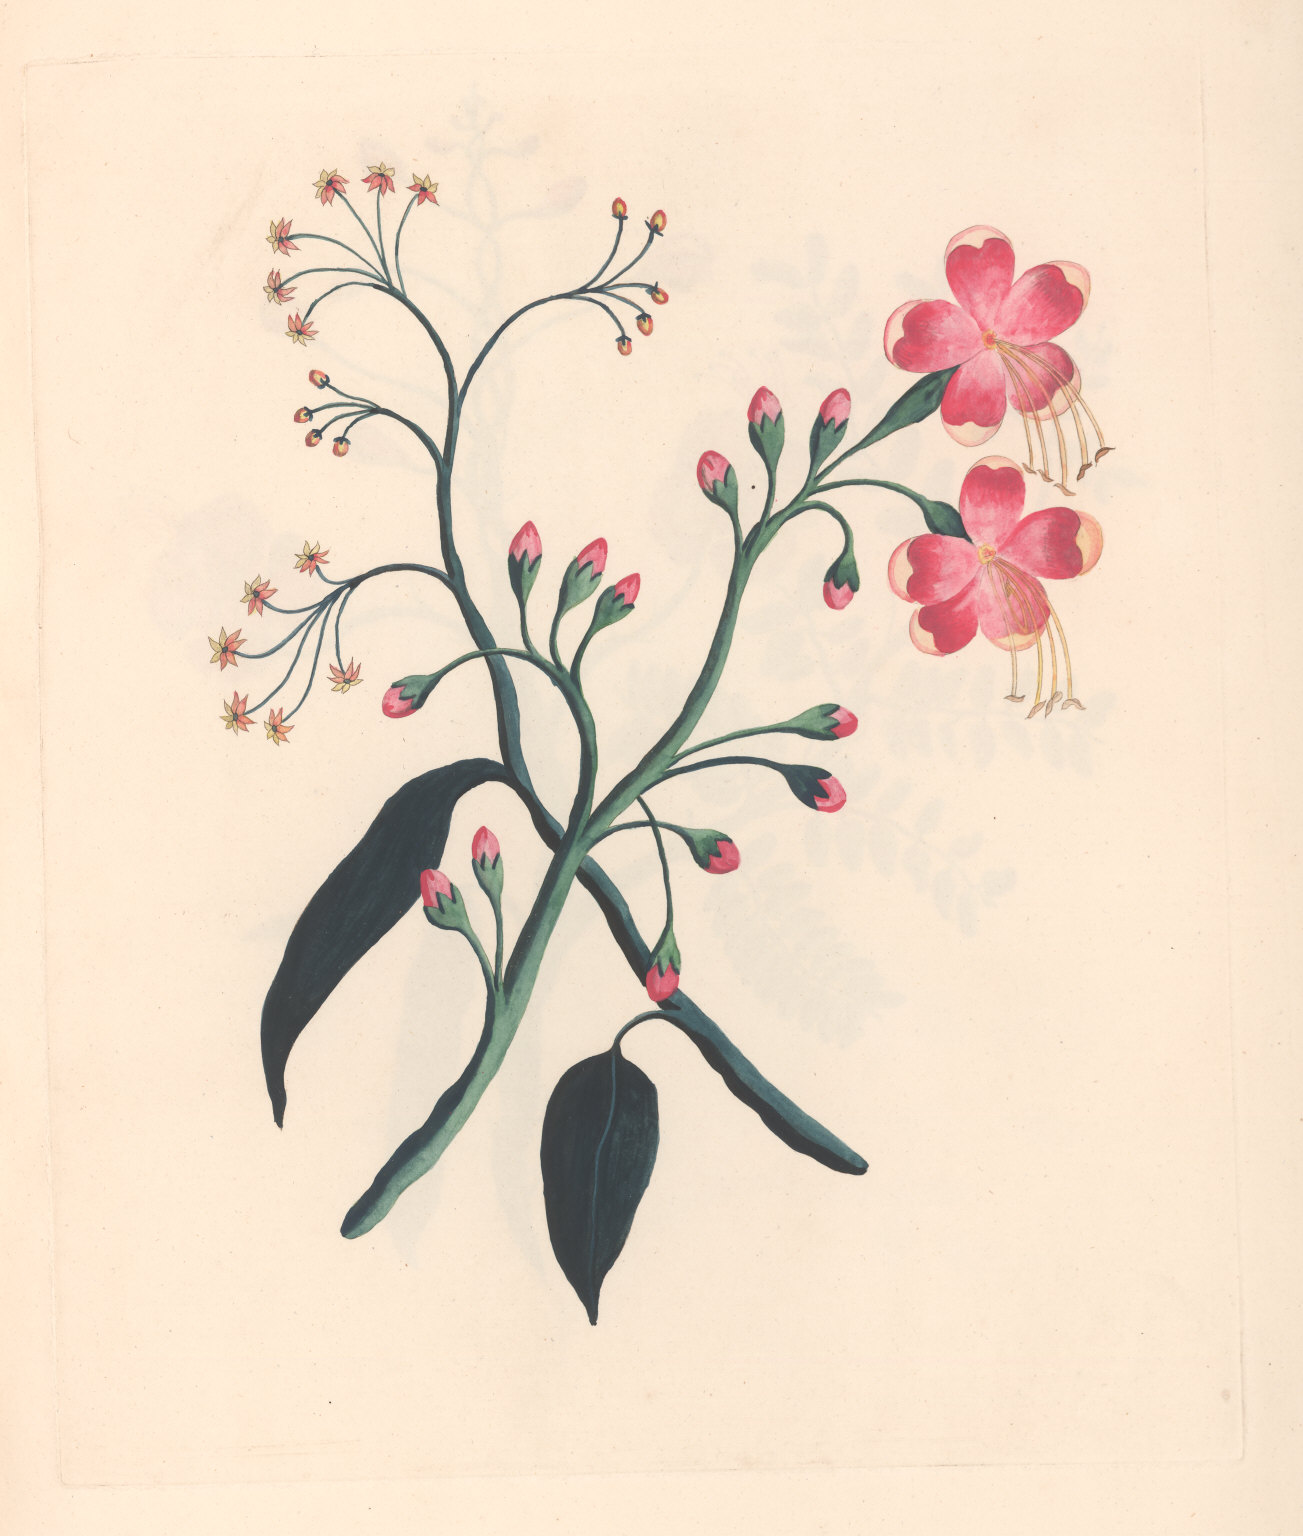 No. I. The Bombay Gossipium; or, silk cotton tree. ... The smaller Flower drawn with the above. The Apocynum-erectum; or Wild ipecacuan. A strong vegetable Poison and Medicine.